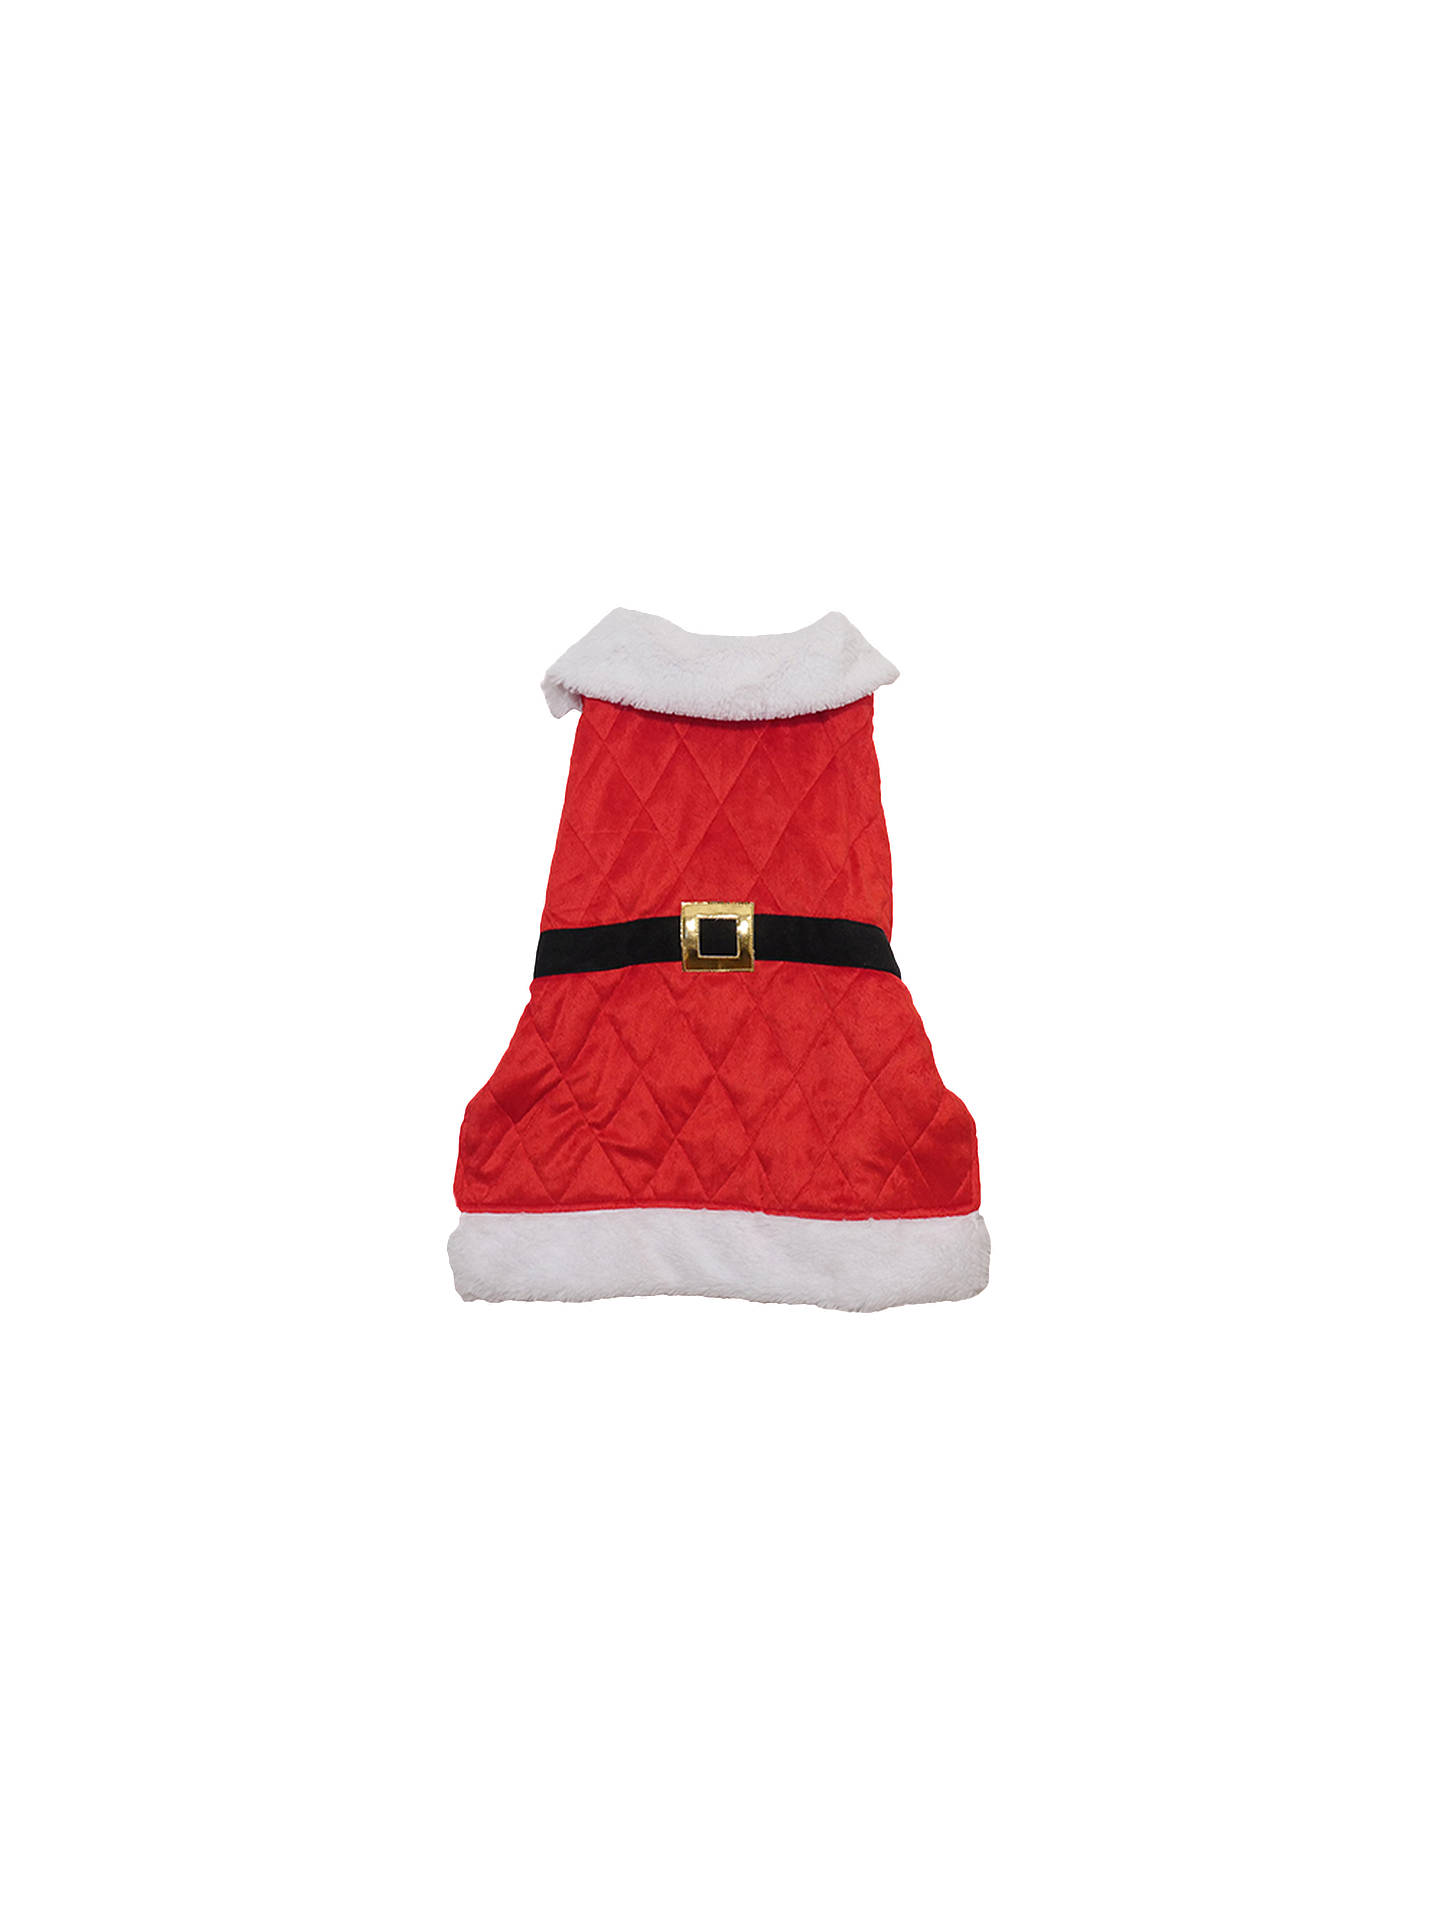 BuyRosewood Santa Dog Coat, Large Online at johnlewis.com